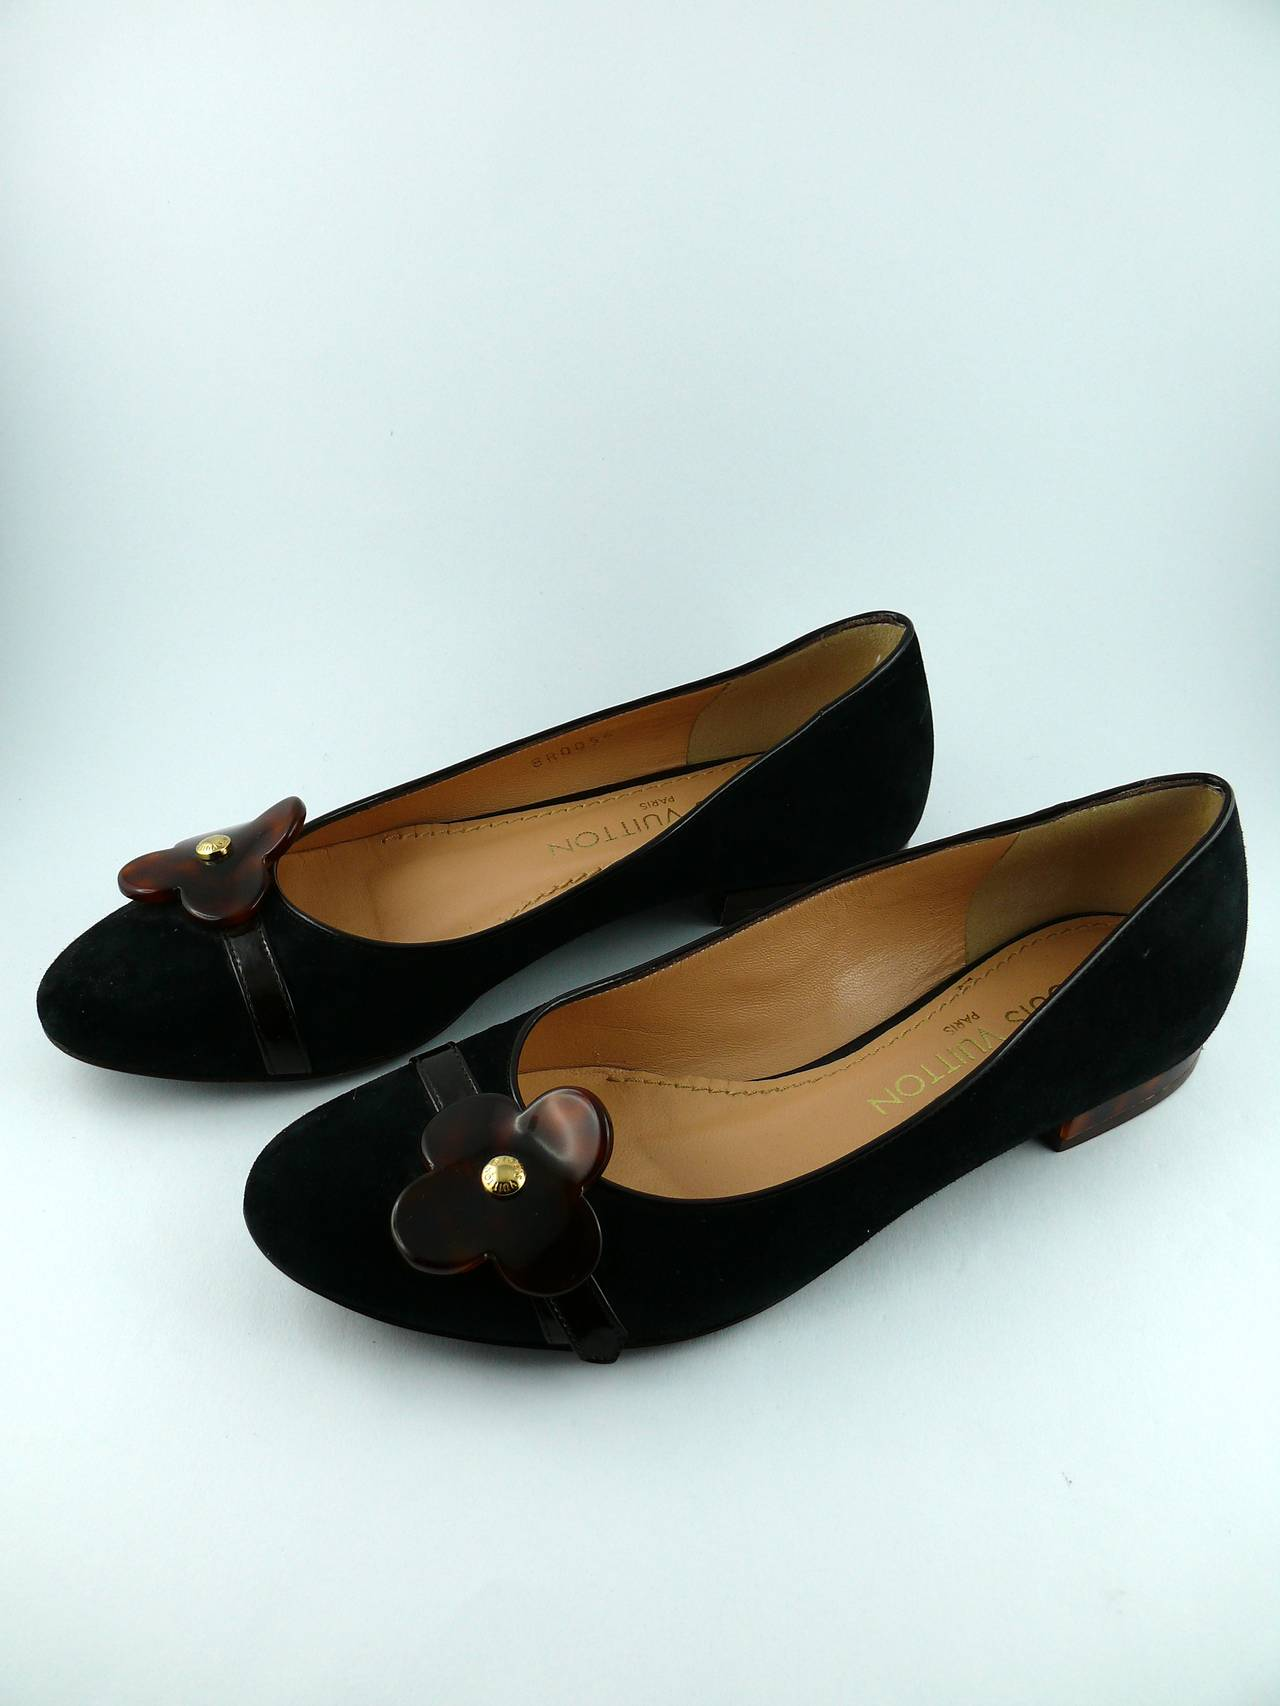 Louis Vuitton Black Suede and Resin Flower Ballet Flat IT 34 1/2 - US 5 1/2 In Excellent Condition For Sale In Nice, FR